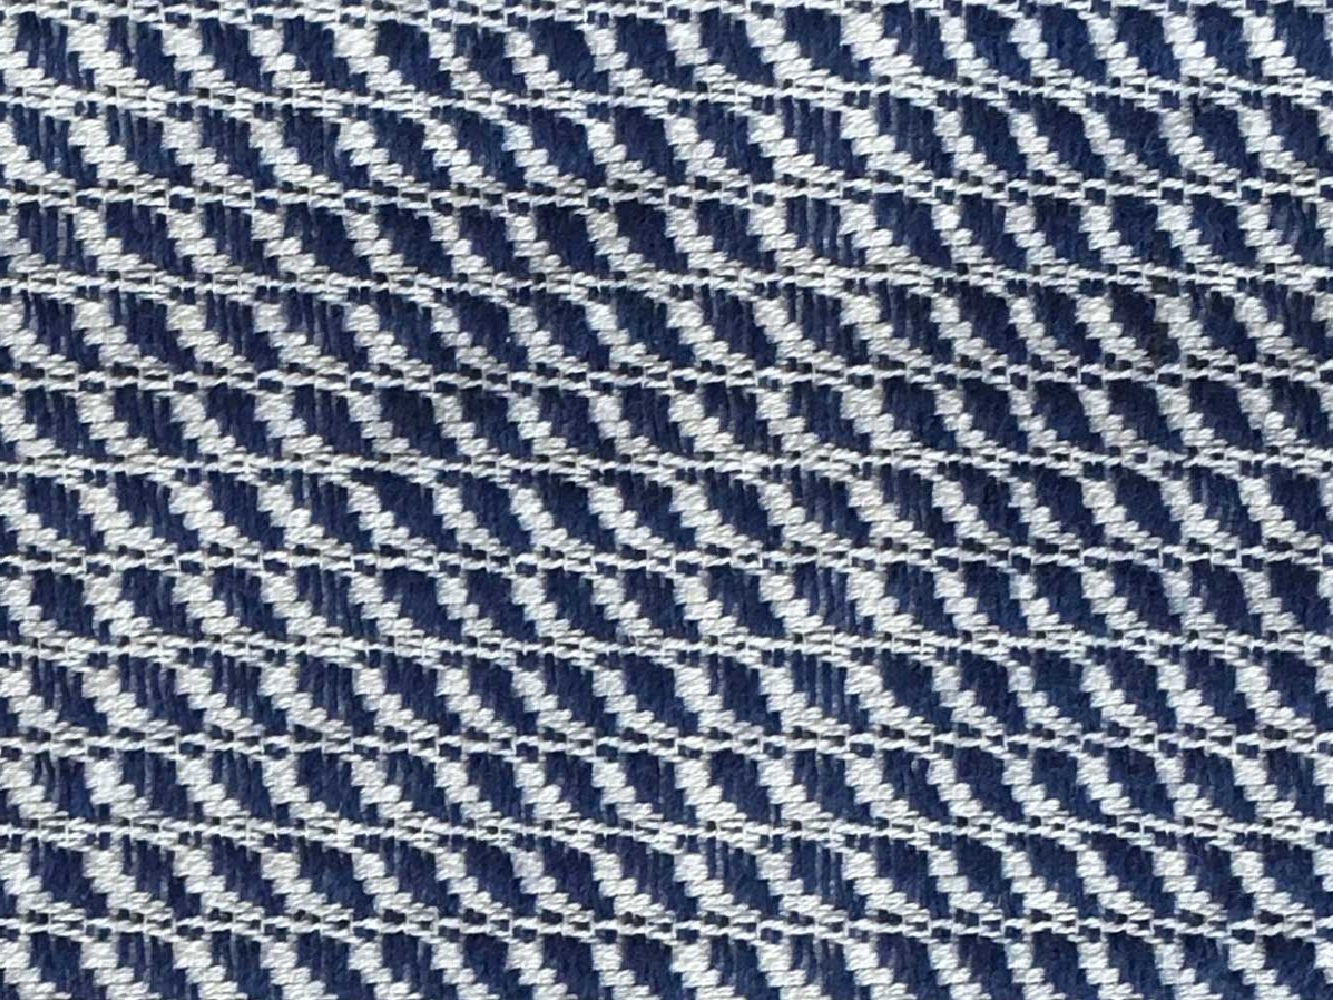 Woven Structure – Blue/white #2